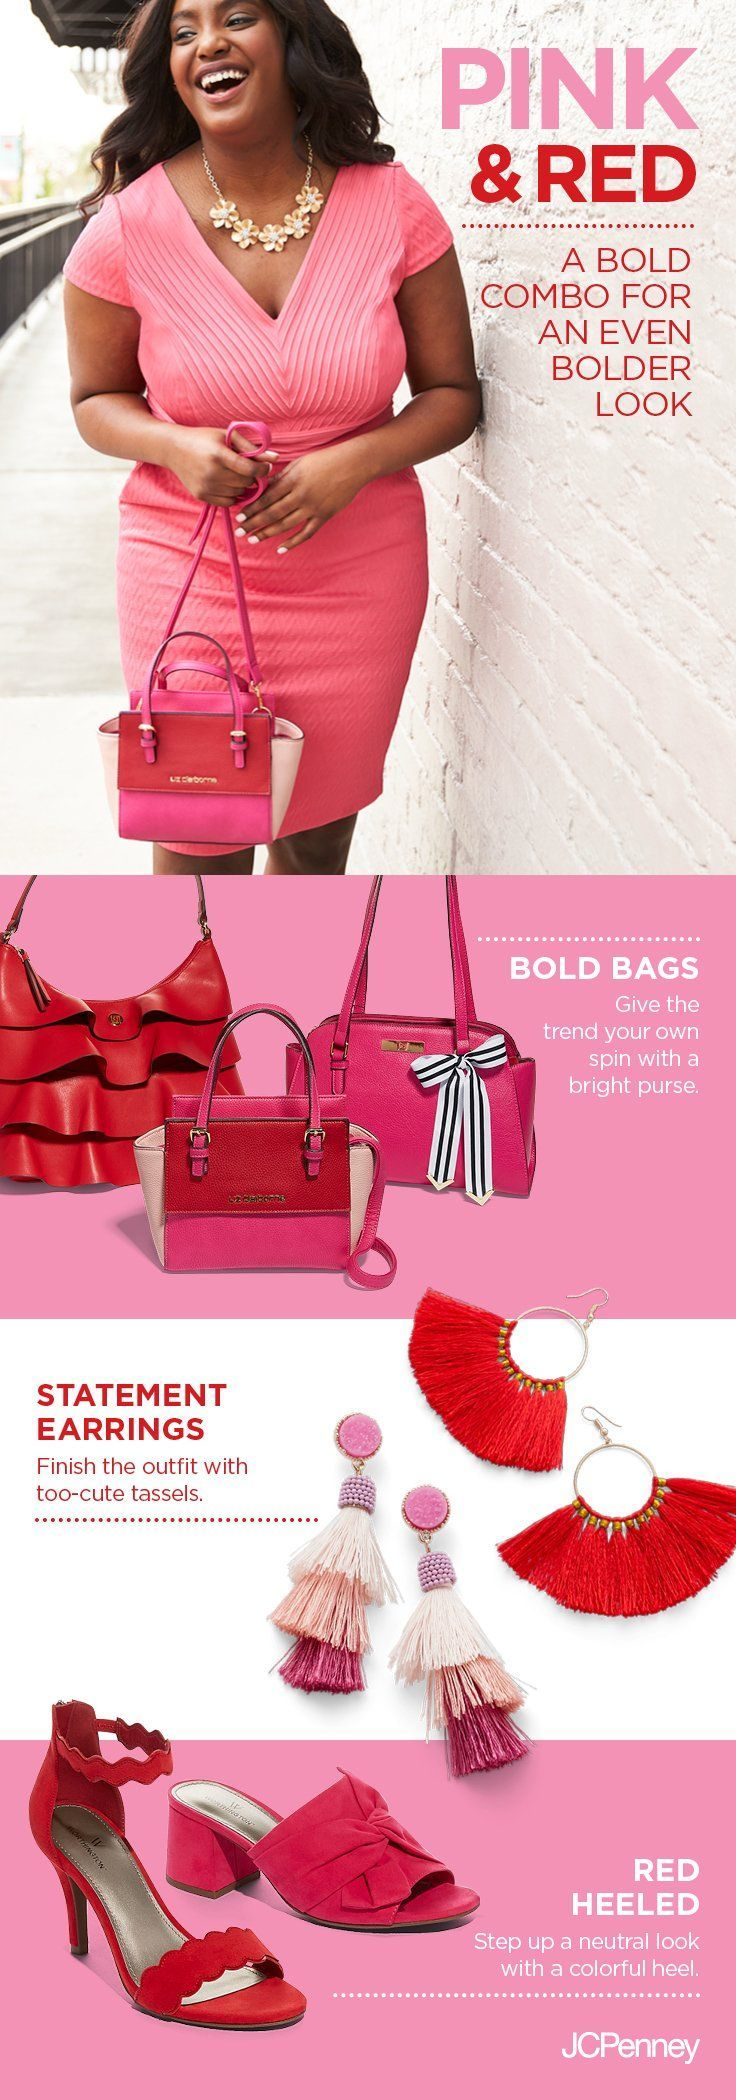 Pink and red are leading the colorblocking trend this season make